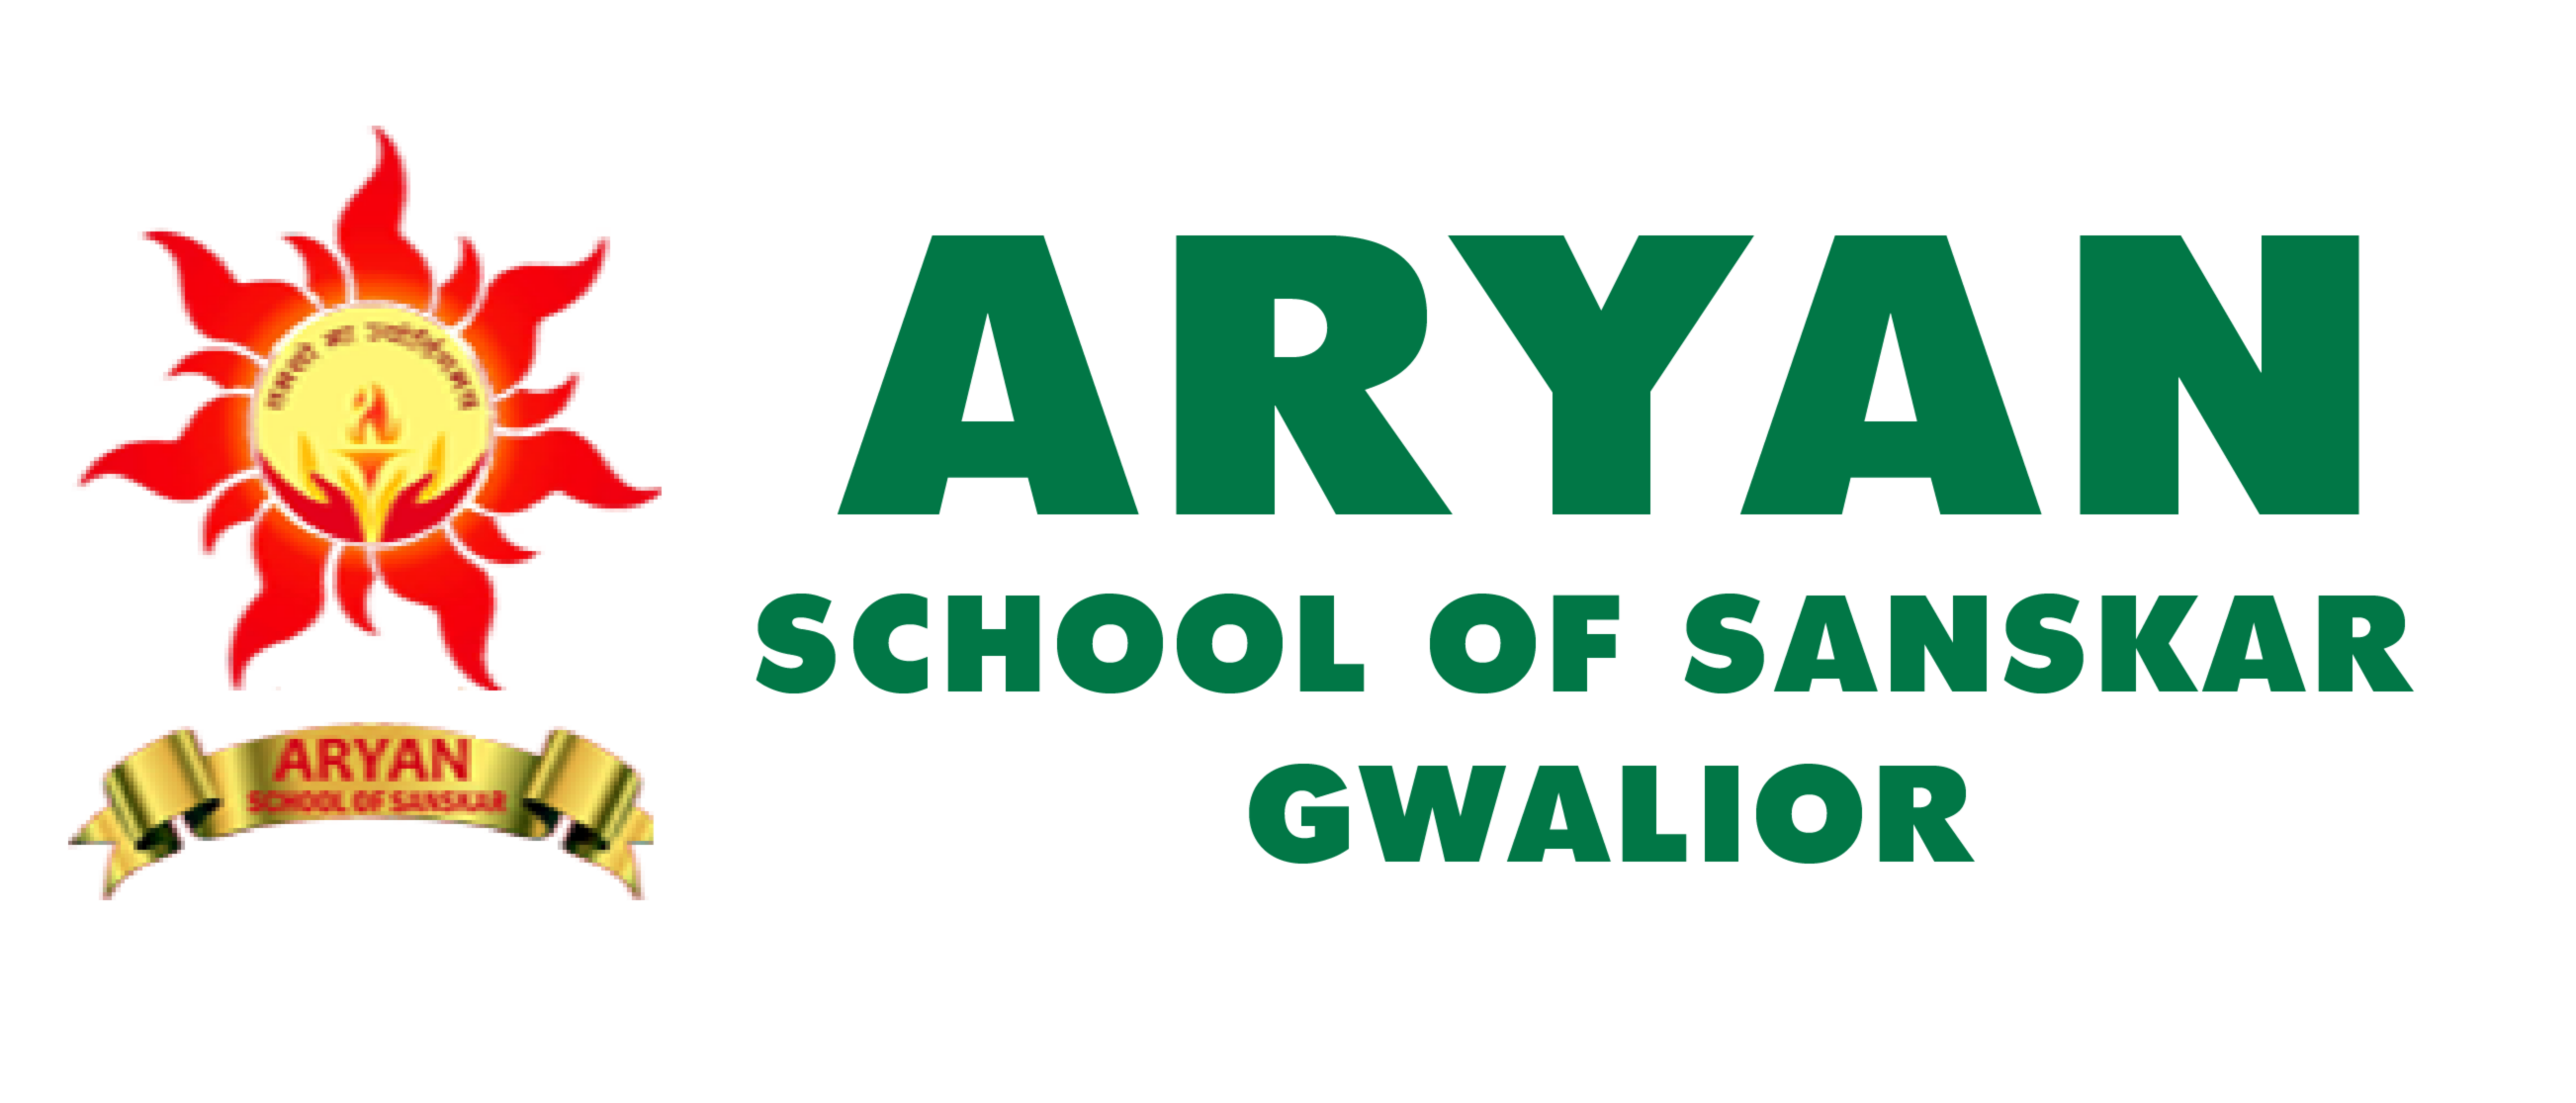 Aryan School Of Sanskar